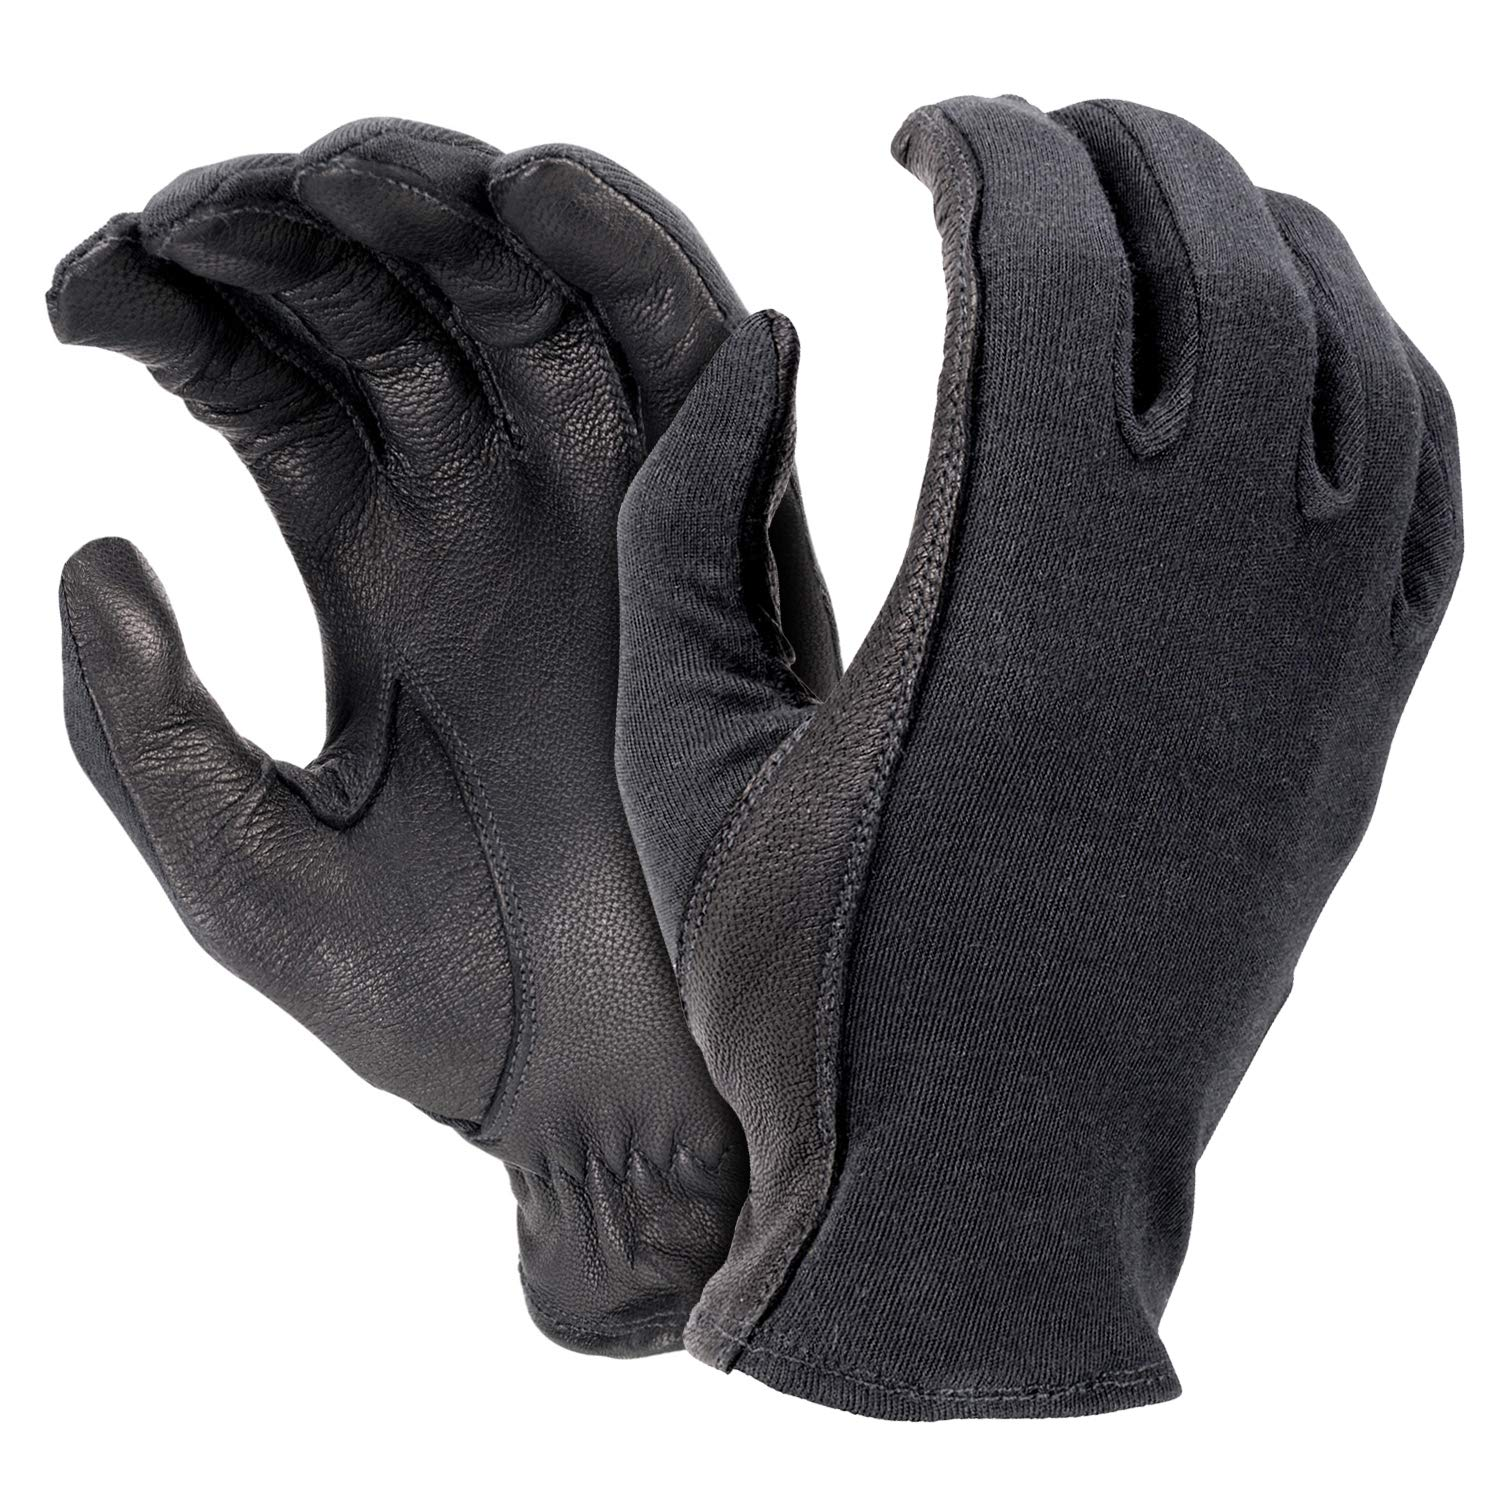 Hatch KSG500 Tactical Pull-On Operator Glove with Kevlar - Black